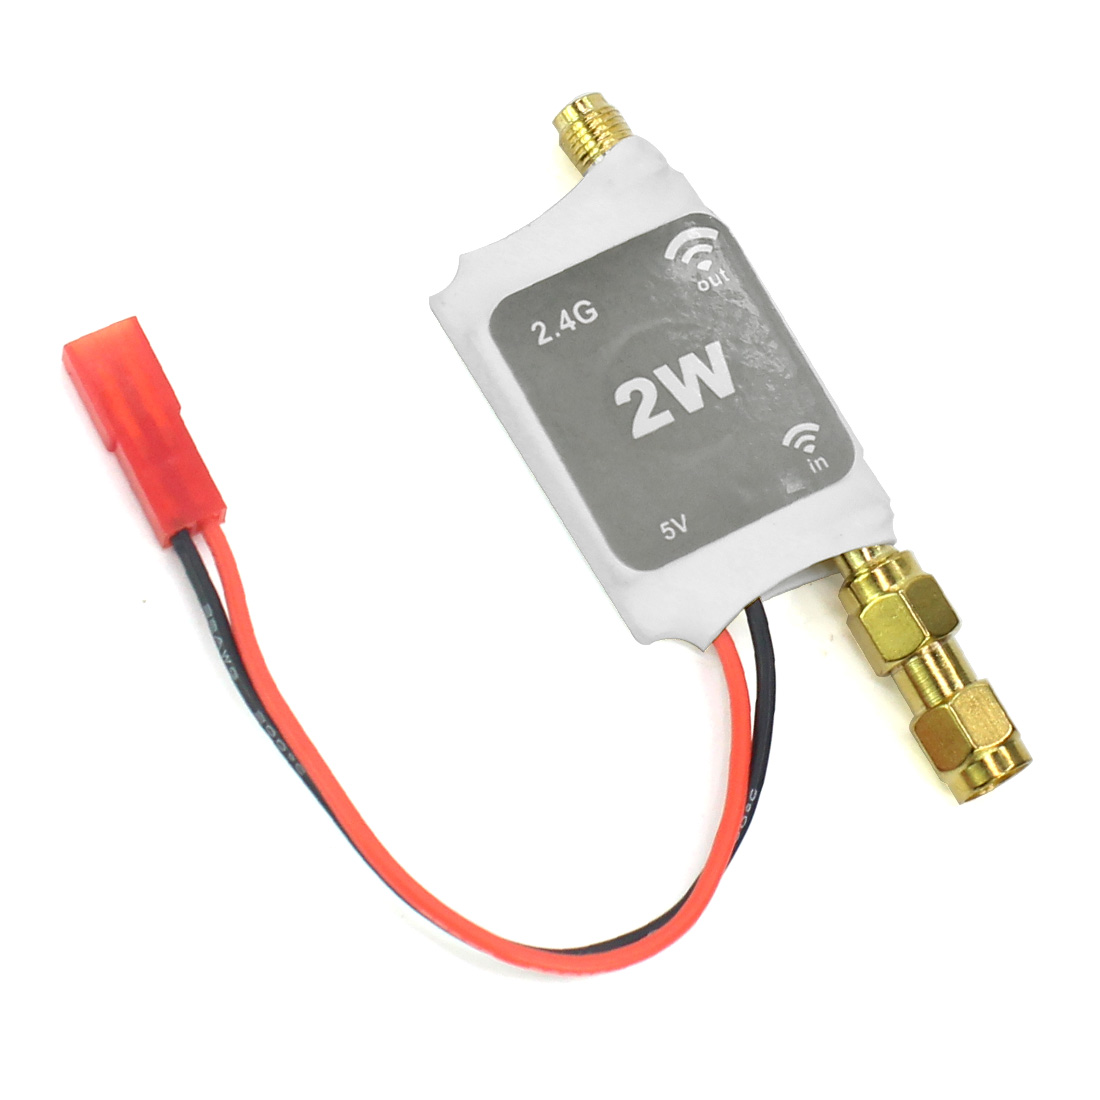 2.4G Radio Signal Amplifier Remote Control Signal Booster for RC Model Quadcopter Multicopter Drone цена